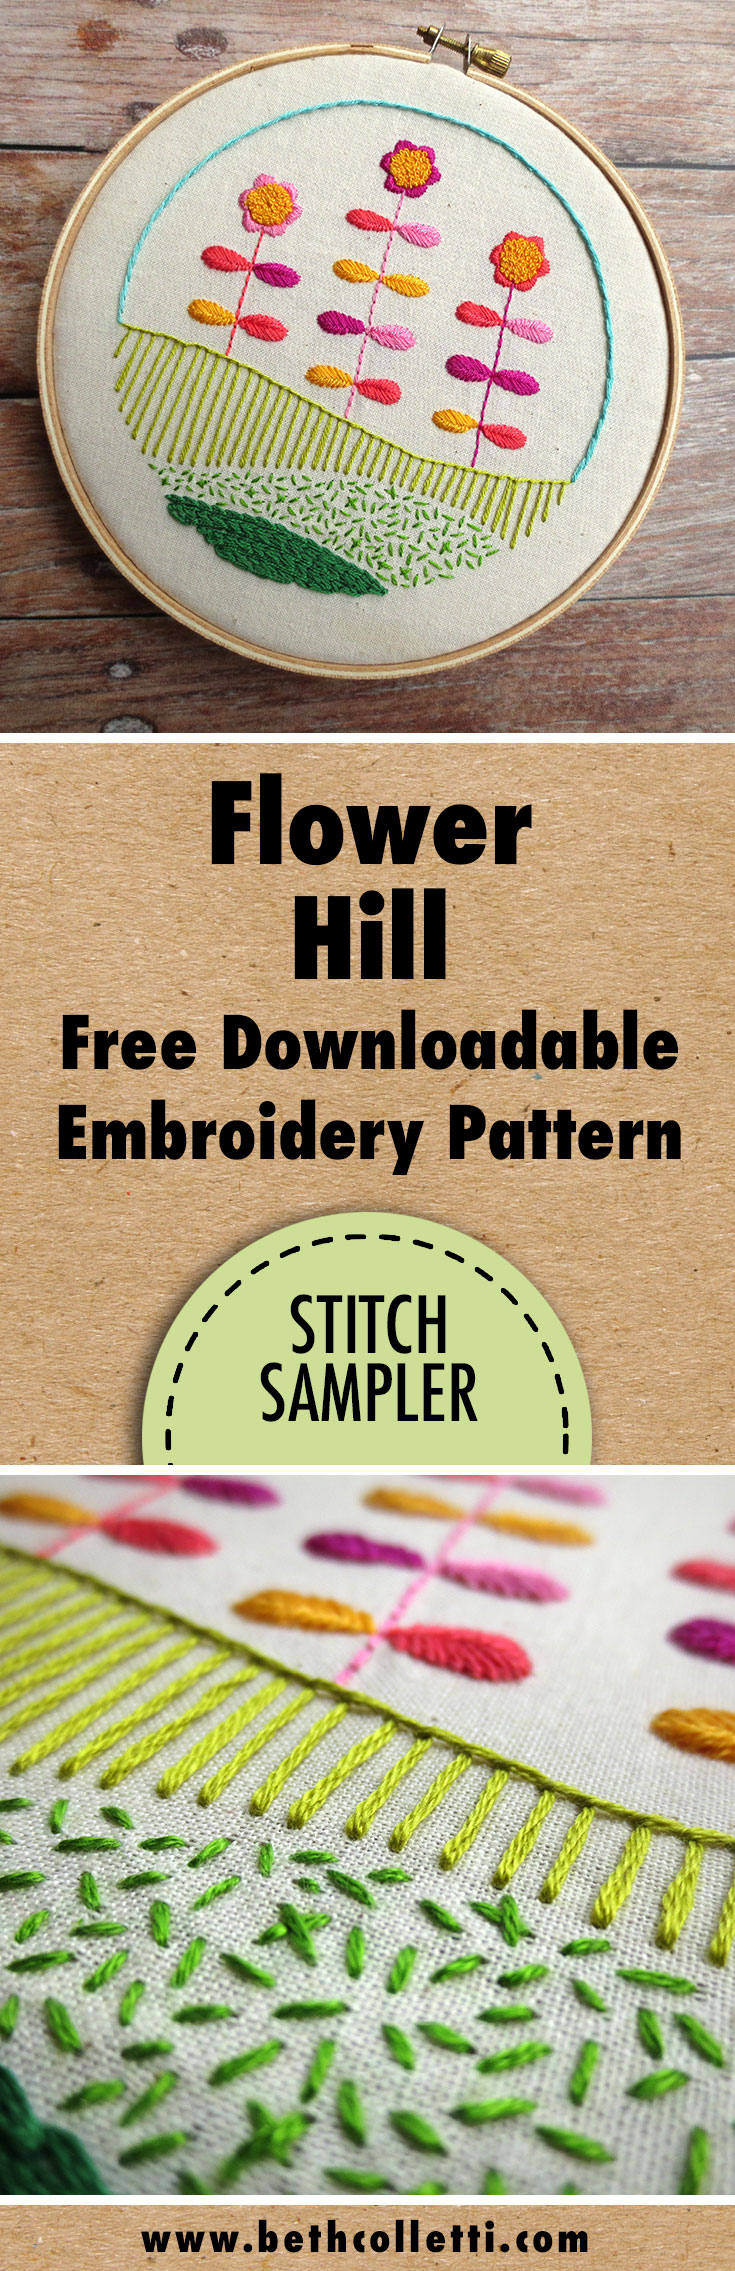 Beth_Colletti_Flower_Hill_Free_Pattern_01.jpg